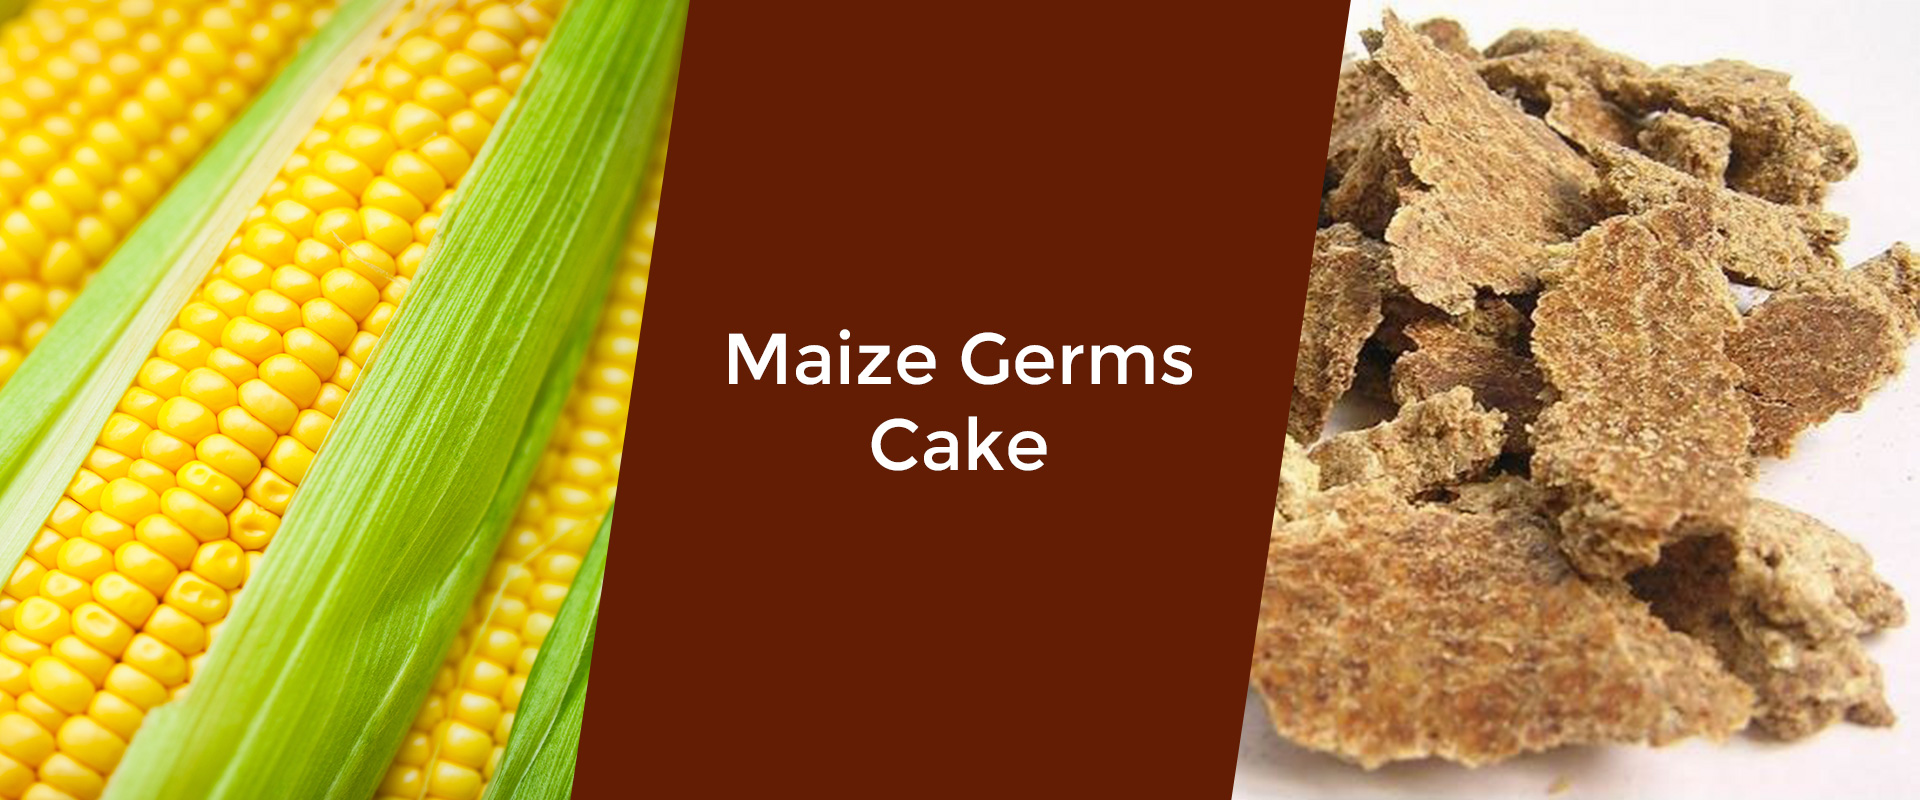 maize-germs-cake-welcome-broker